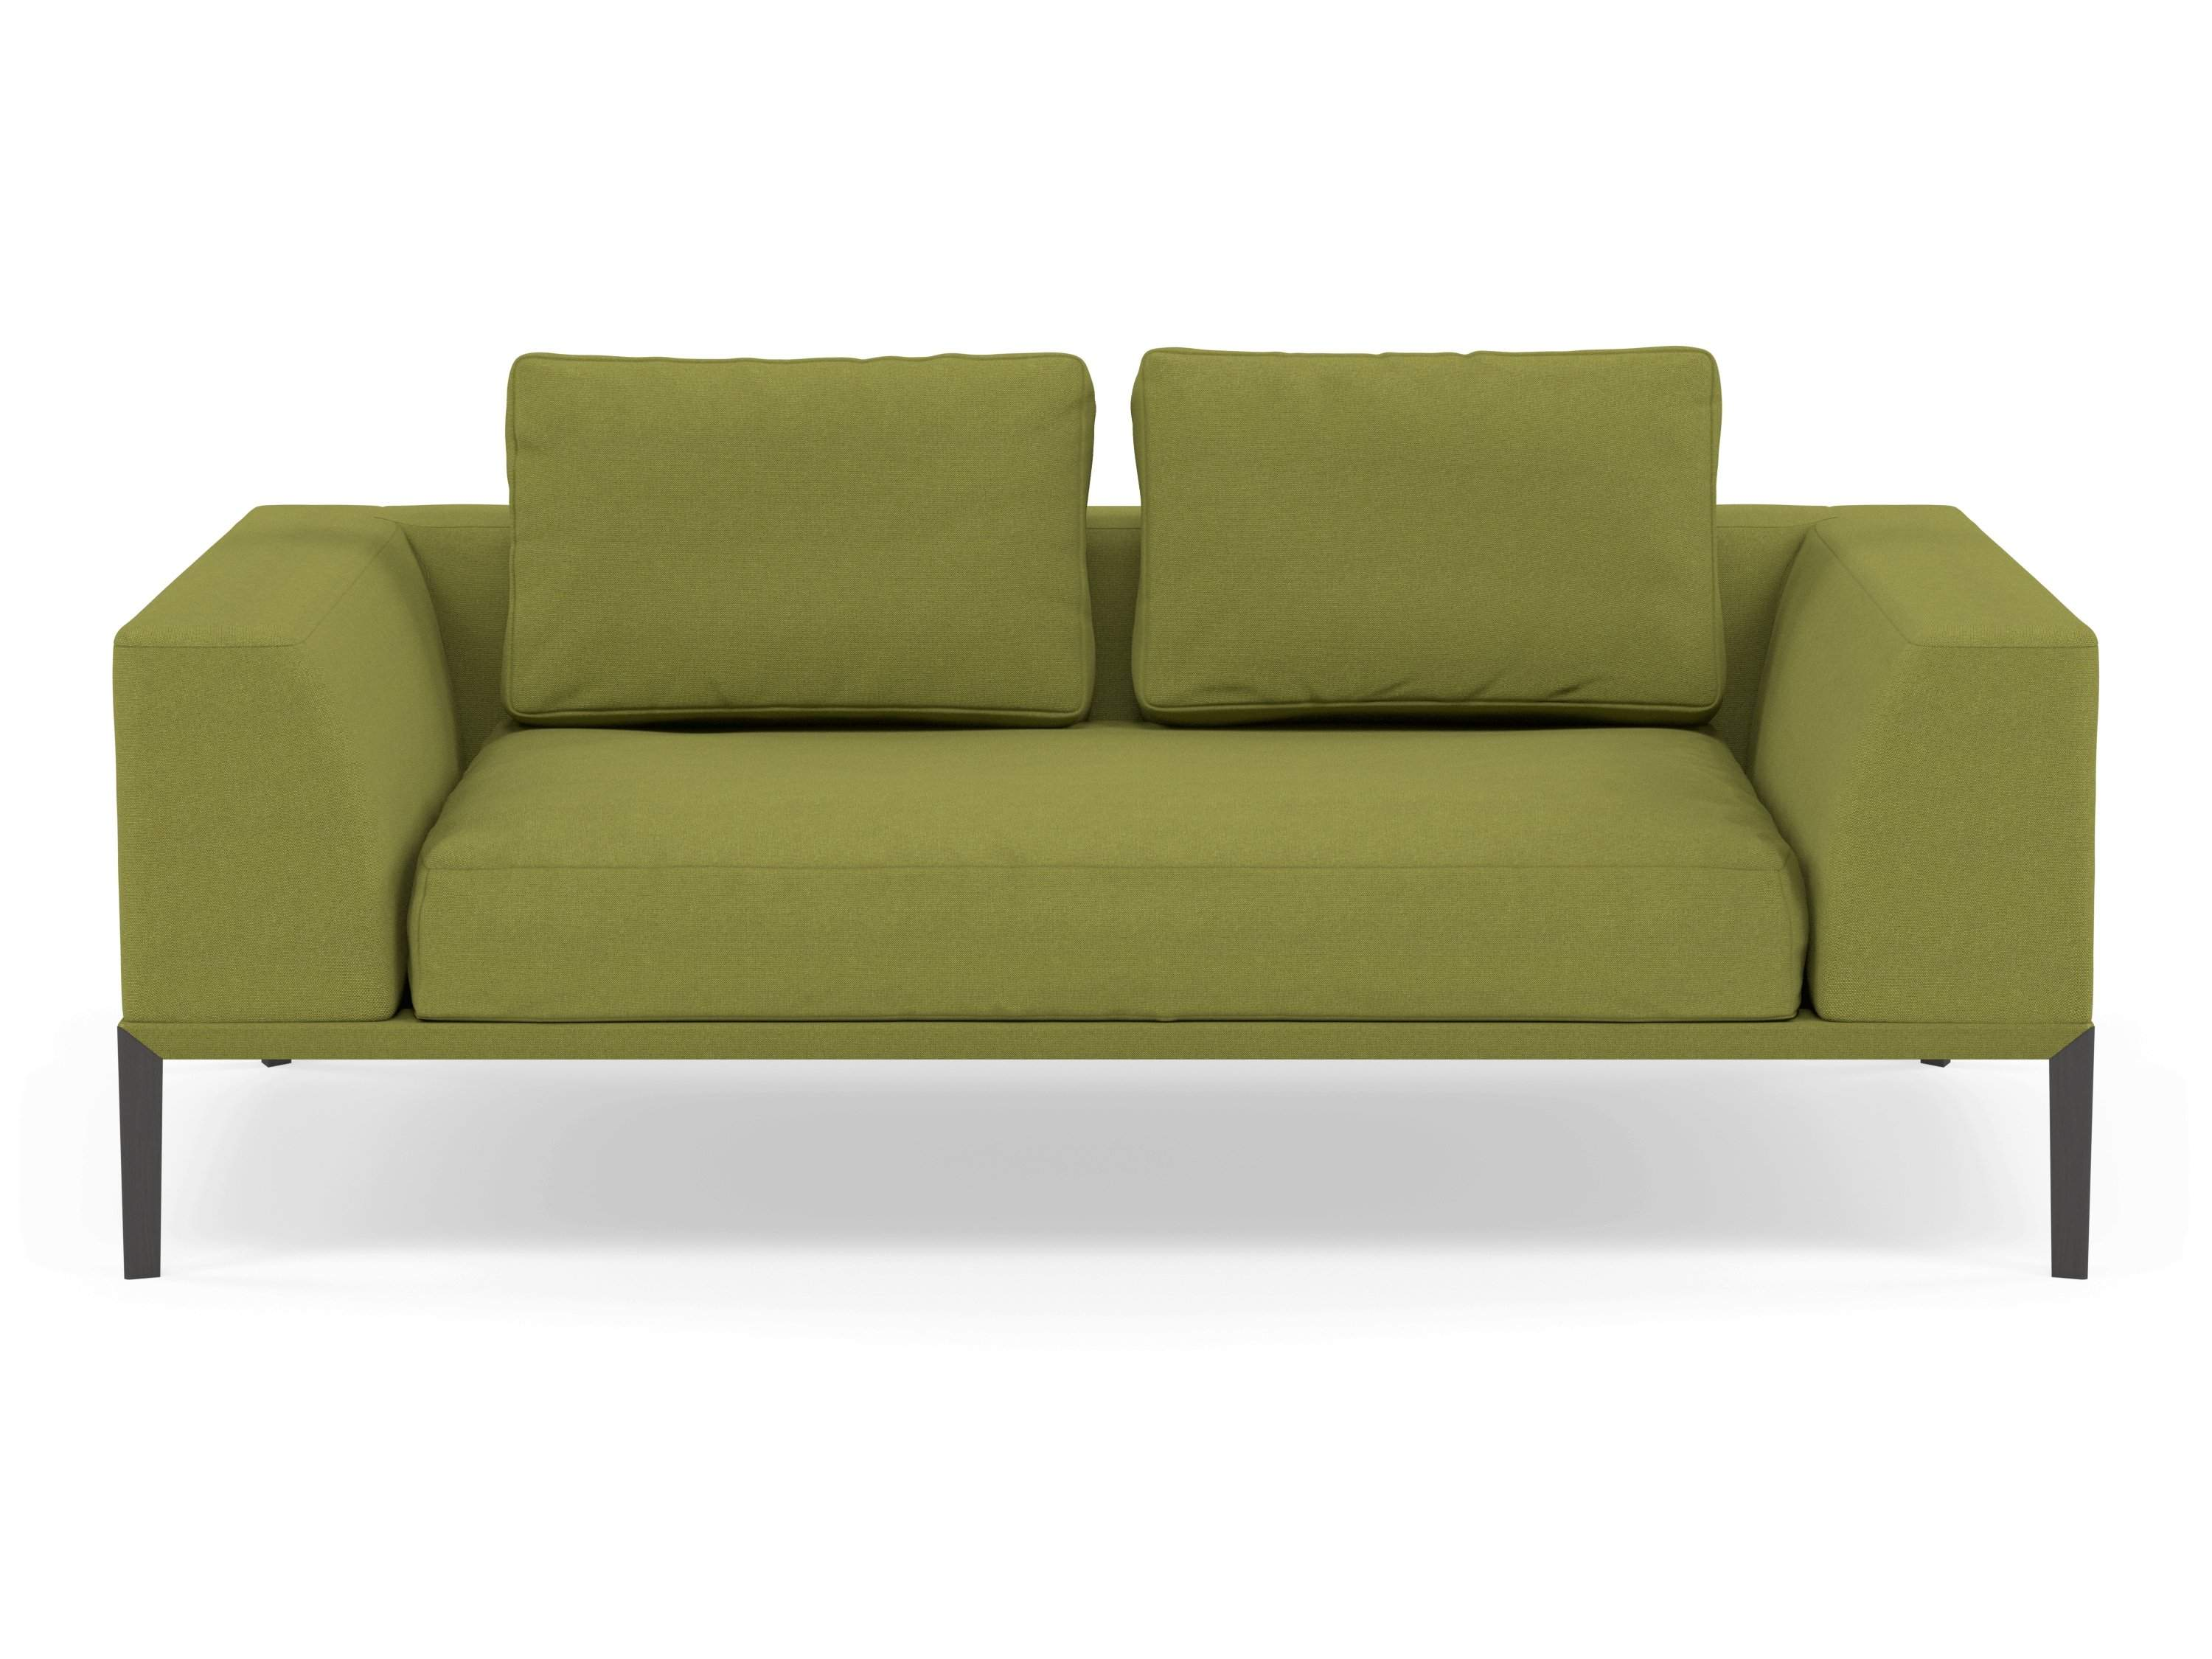 Modern 2 Seater Sofa with 2 Armrests in Lime Green Fabric